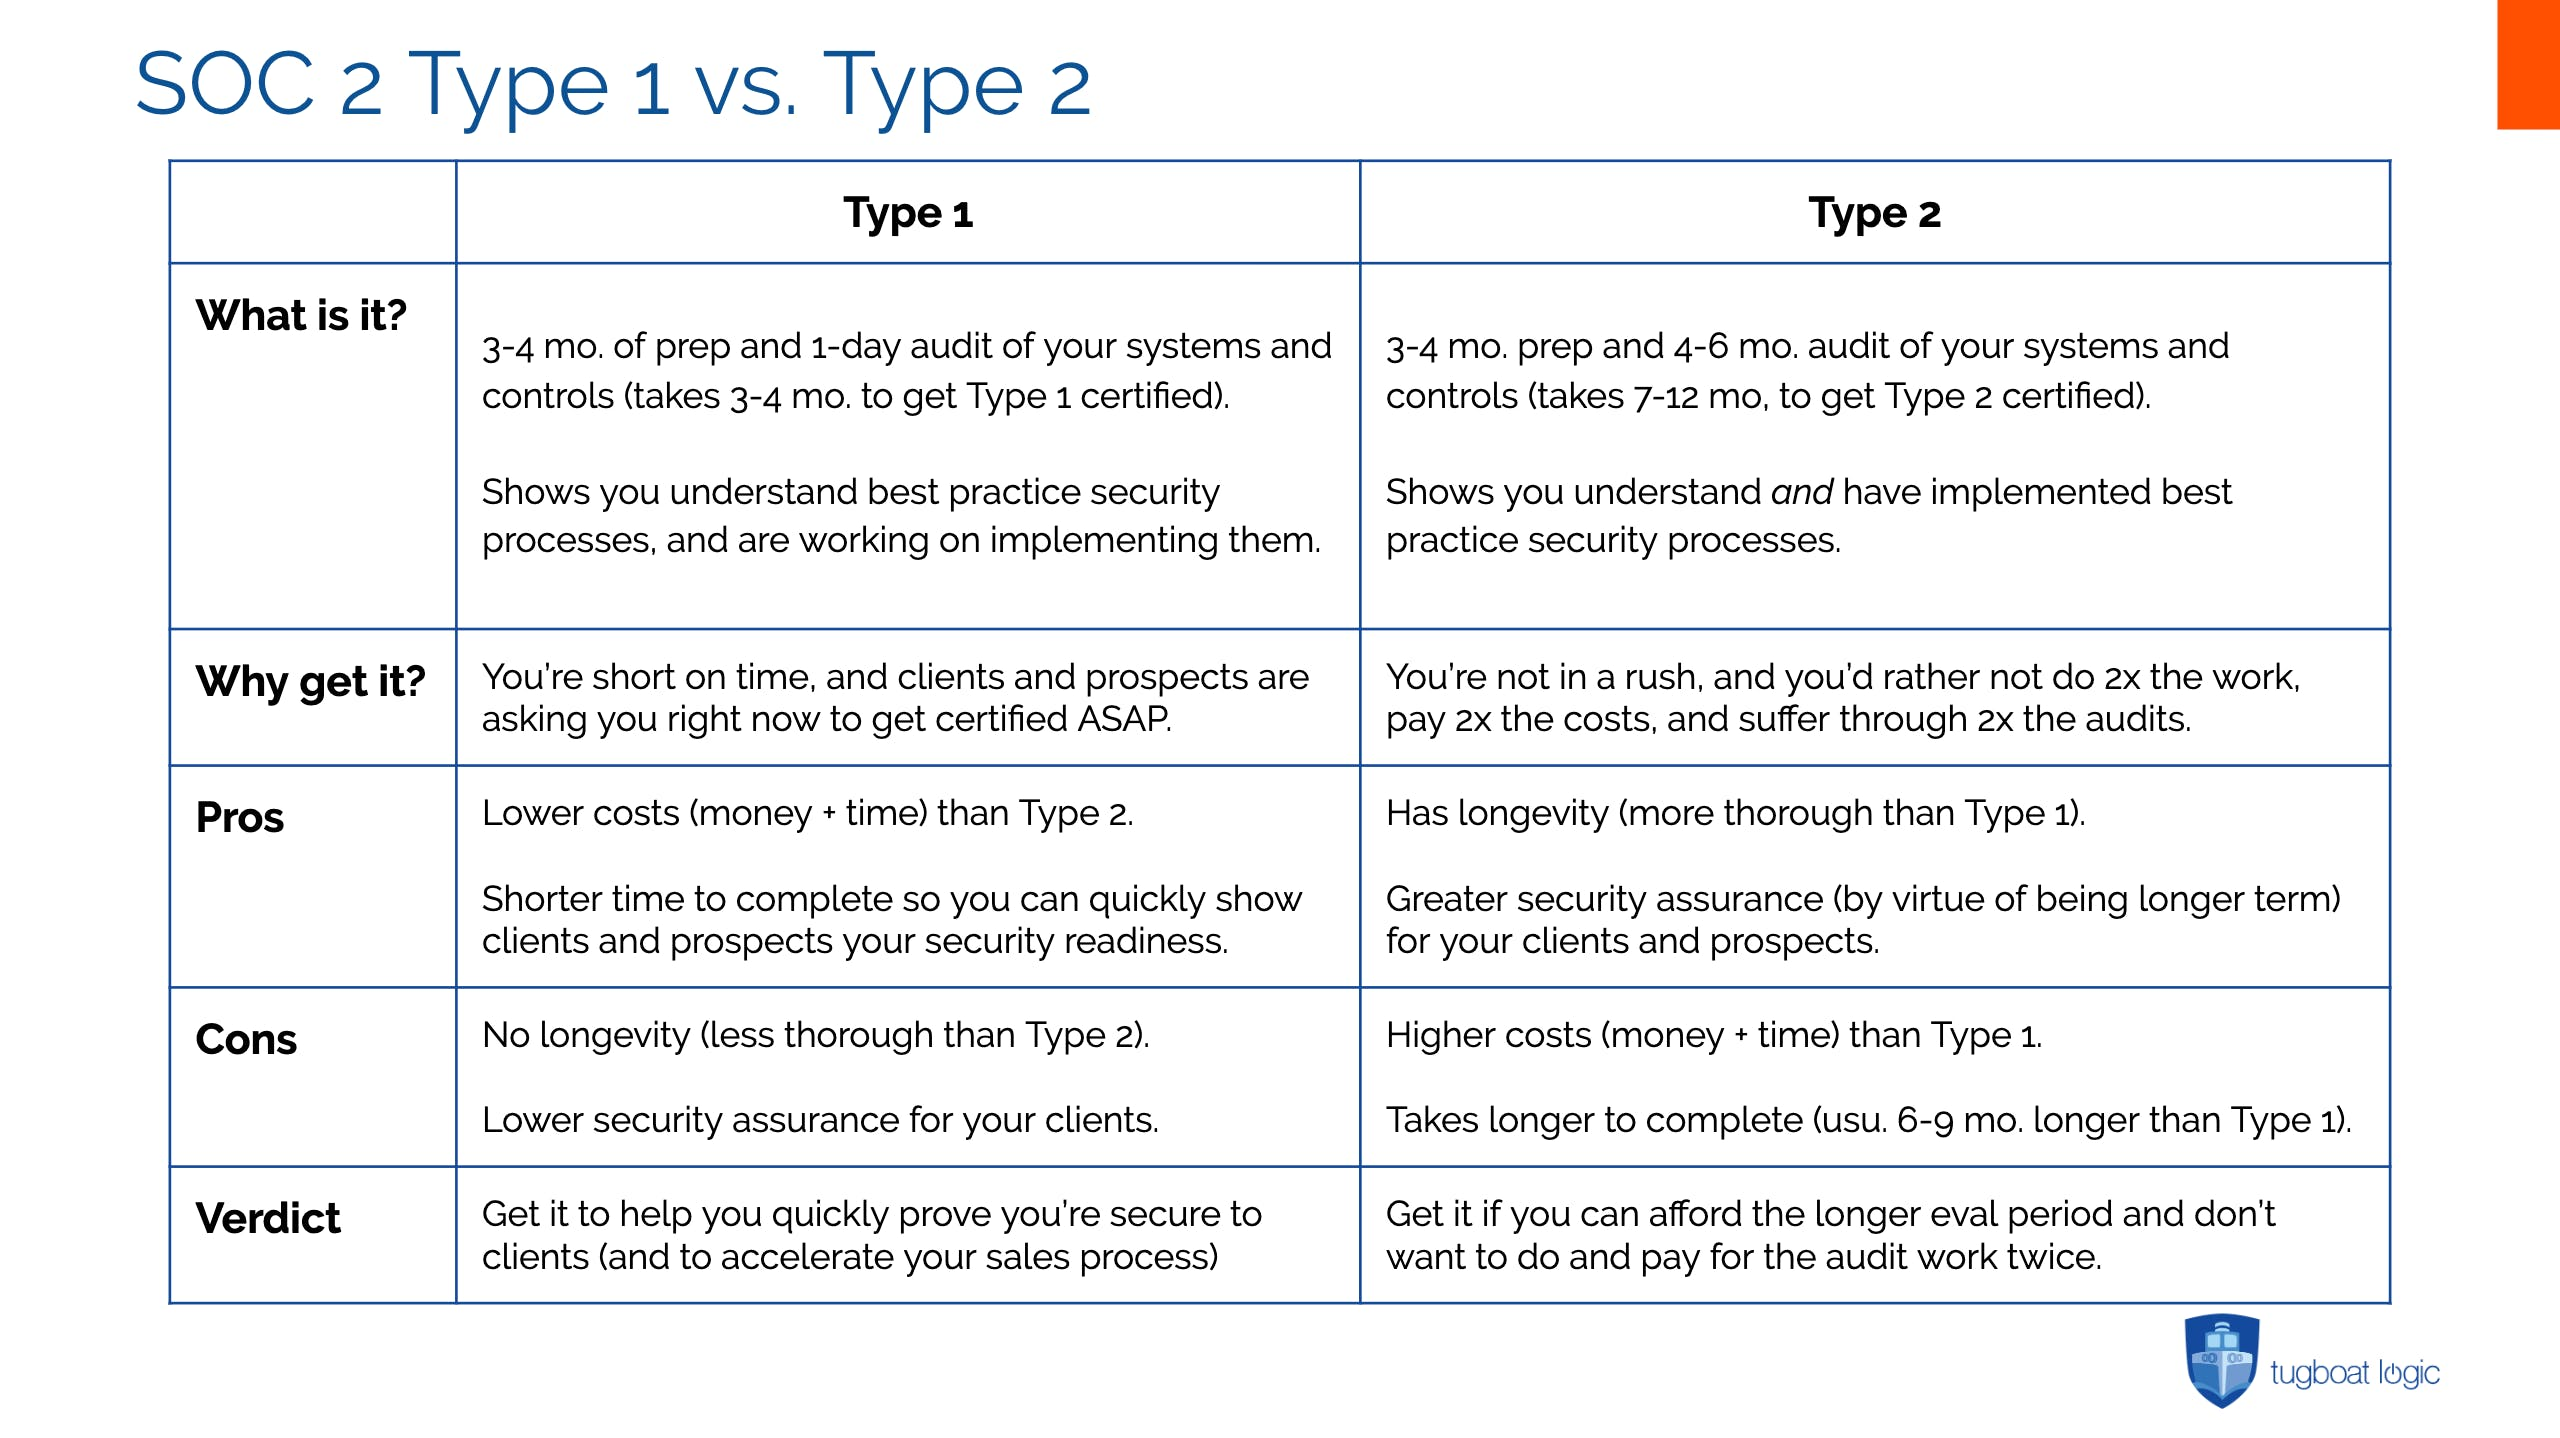 Table showing the differences between SOC 2 Type 1 and Type 2.